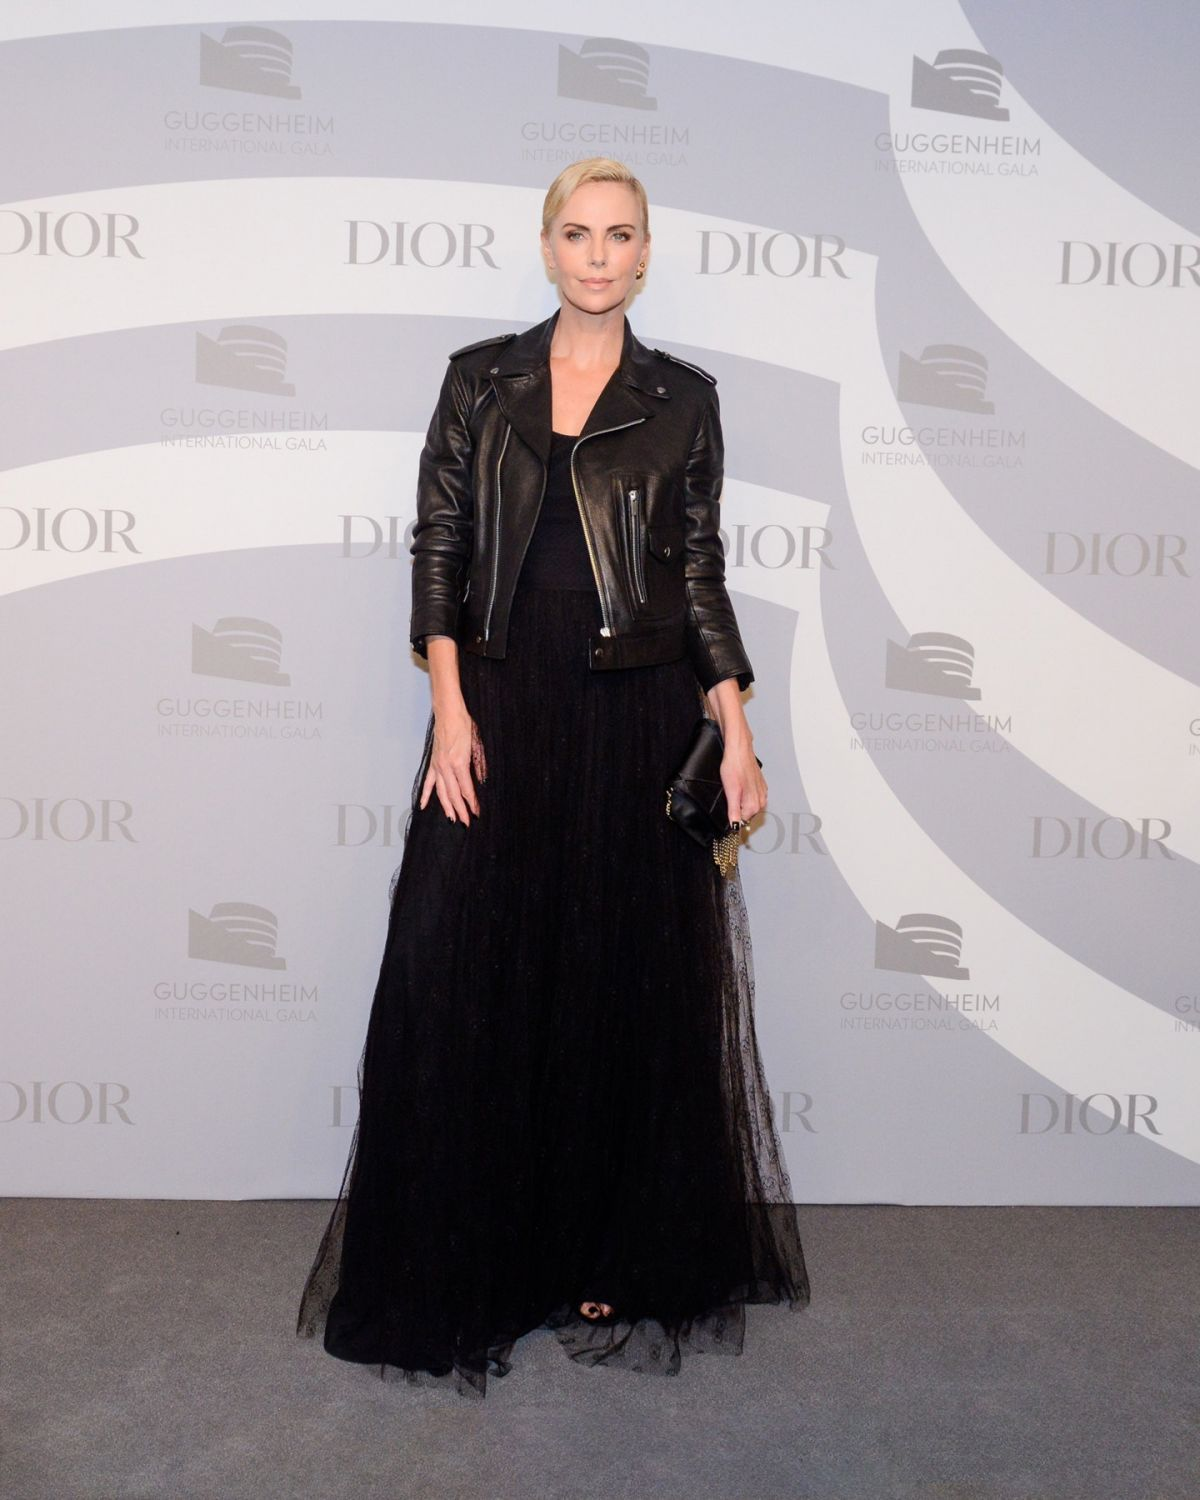 charlize-theron-in-christian-dior-2019-guggenheim-international-gala-in-ny